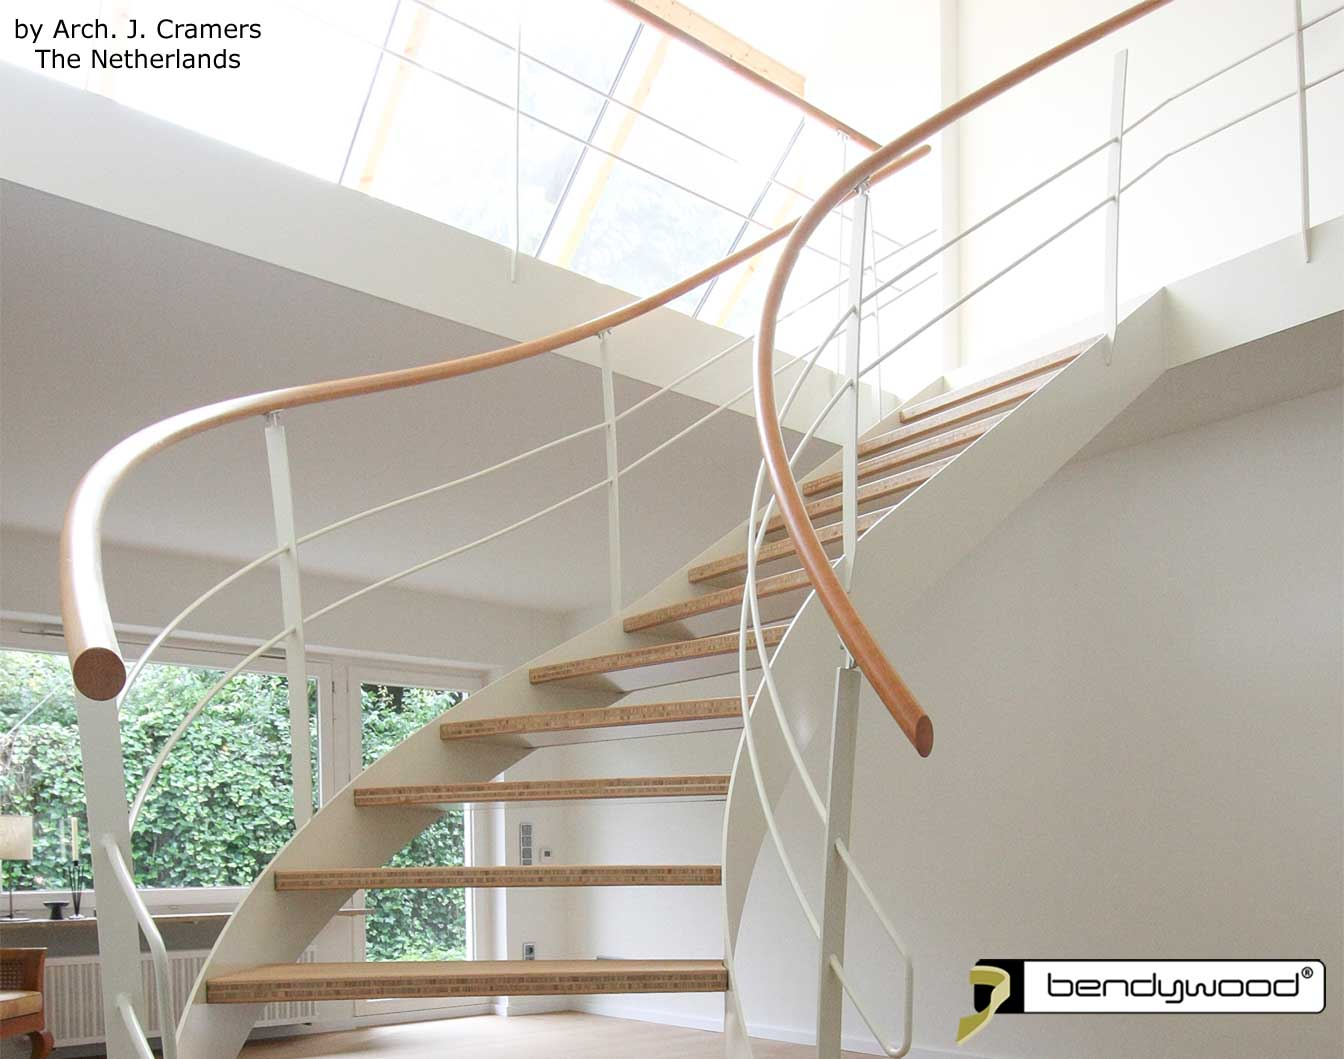 Bendable wood Bendywood® - handrails